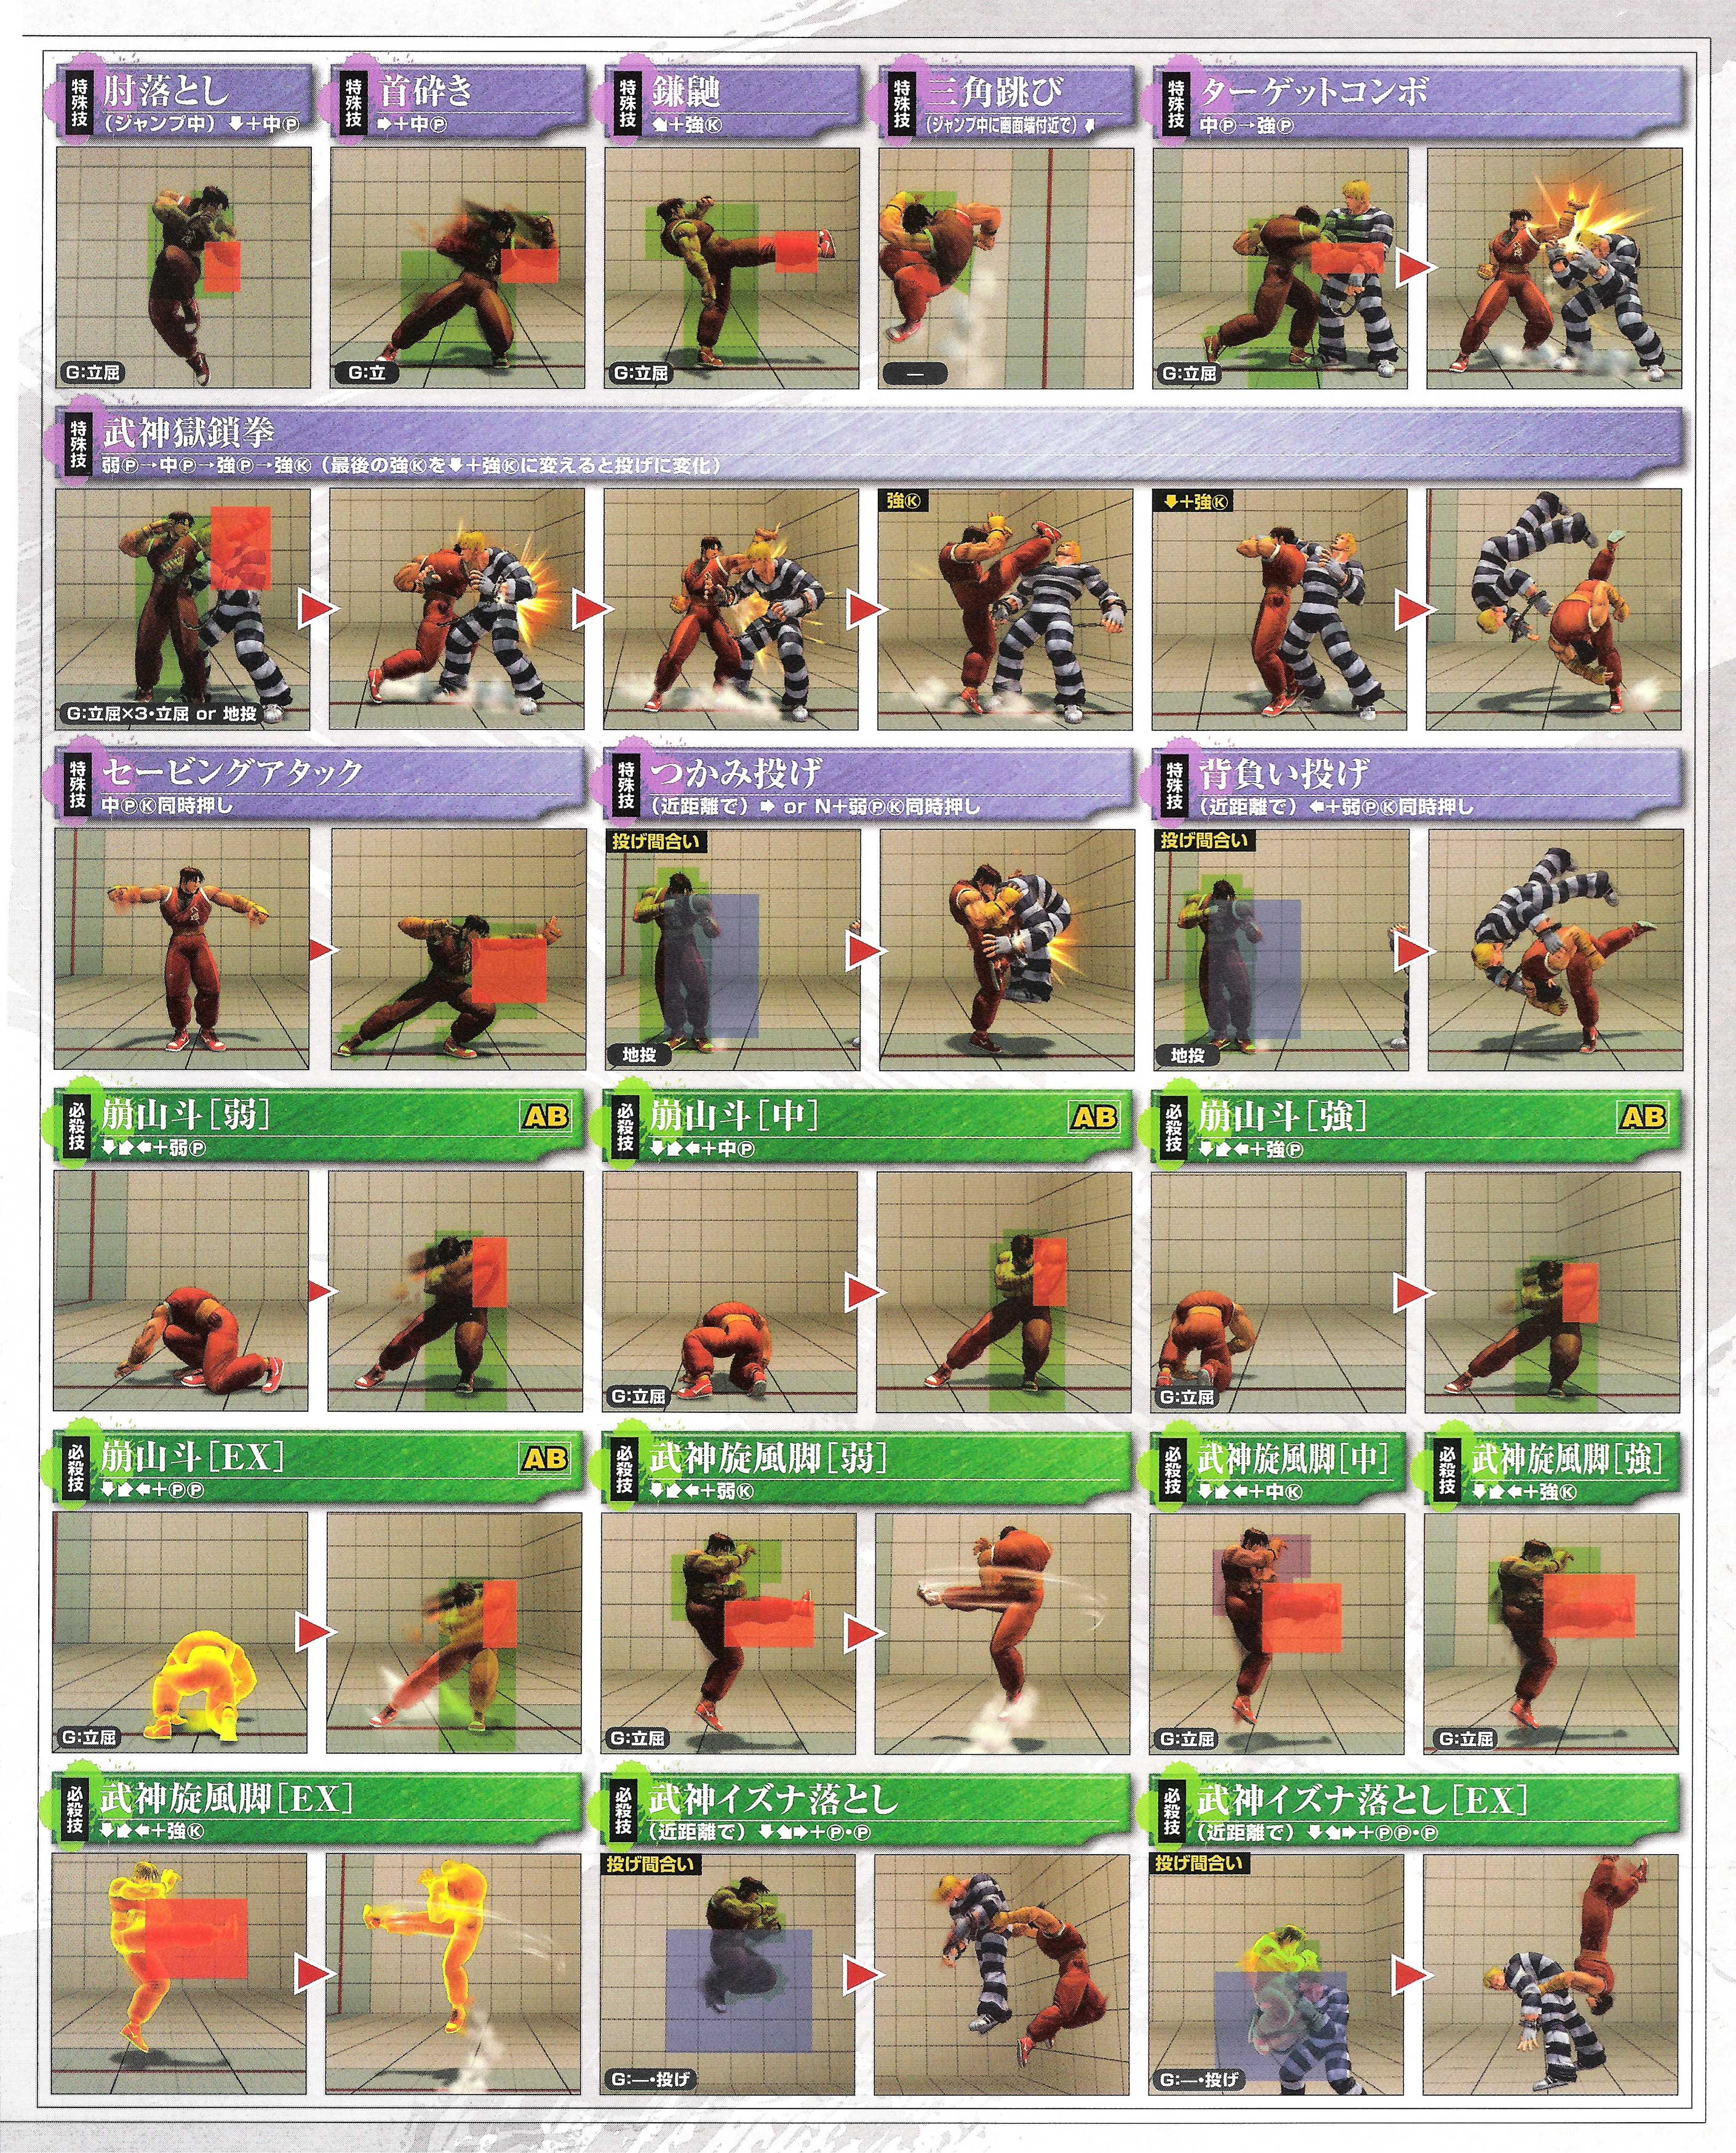 Guy's hit box information for Super Street Fighter 4 Arcade Edition image #2